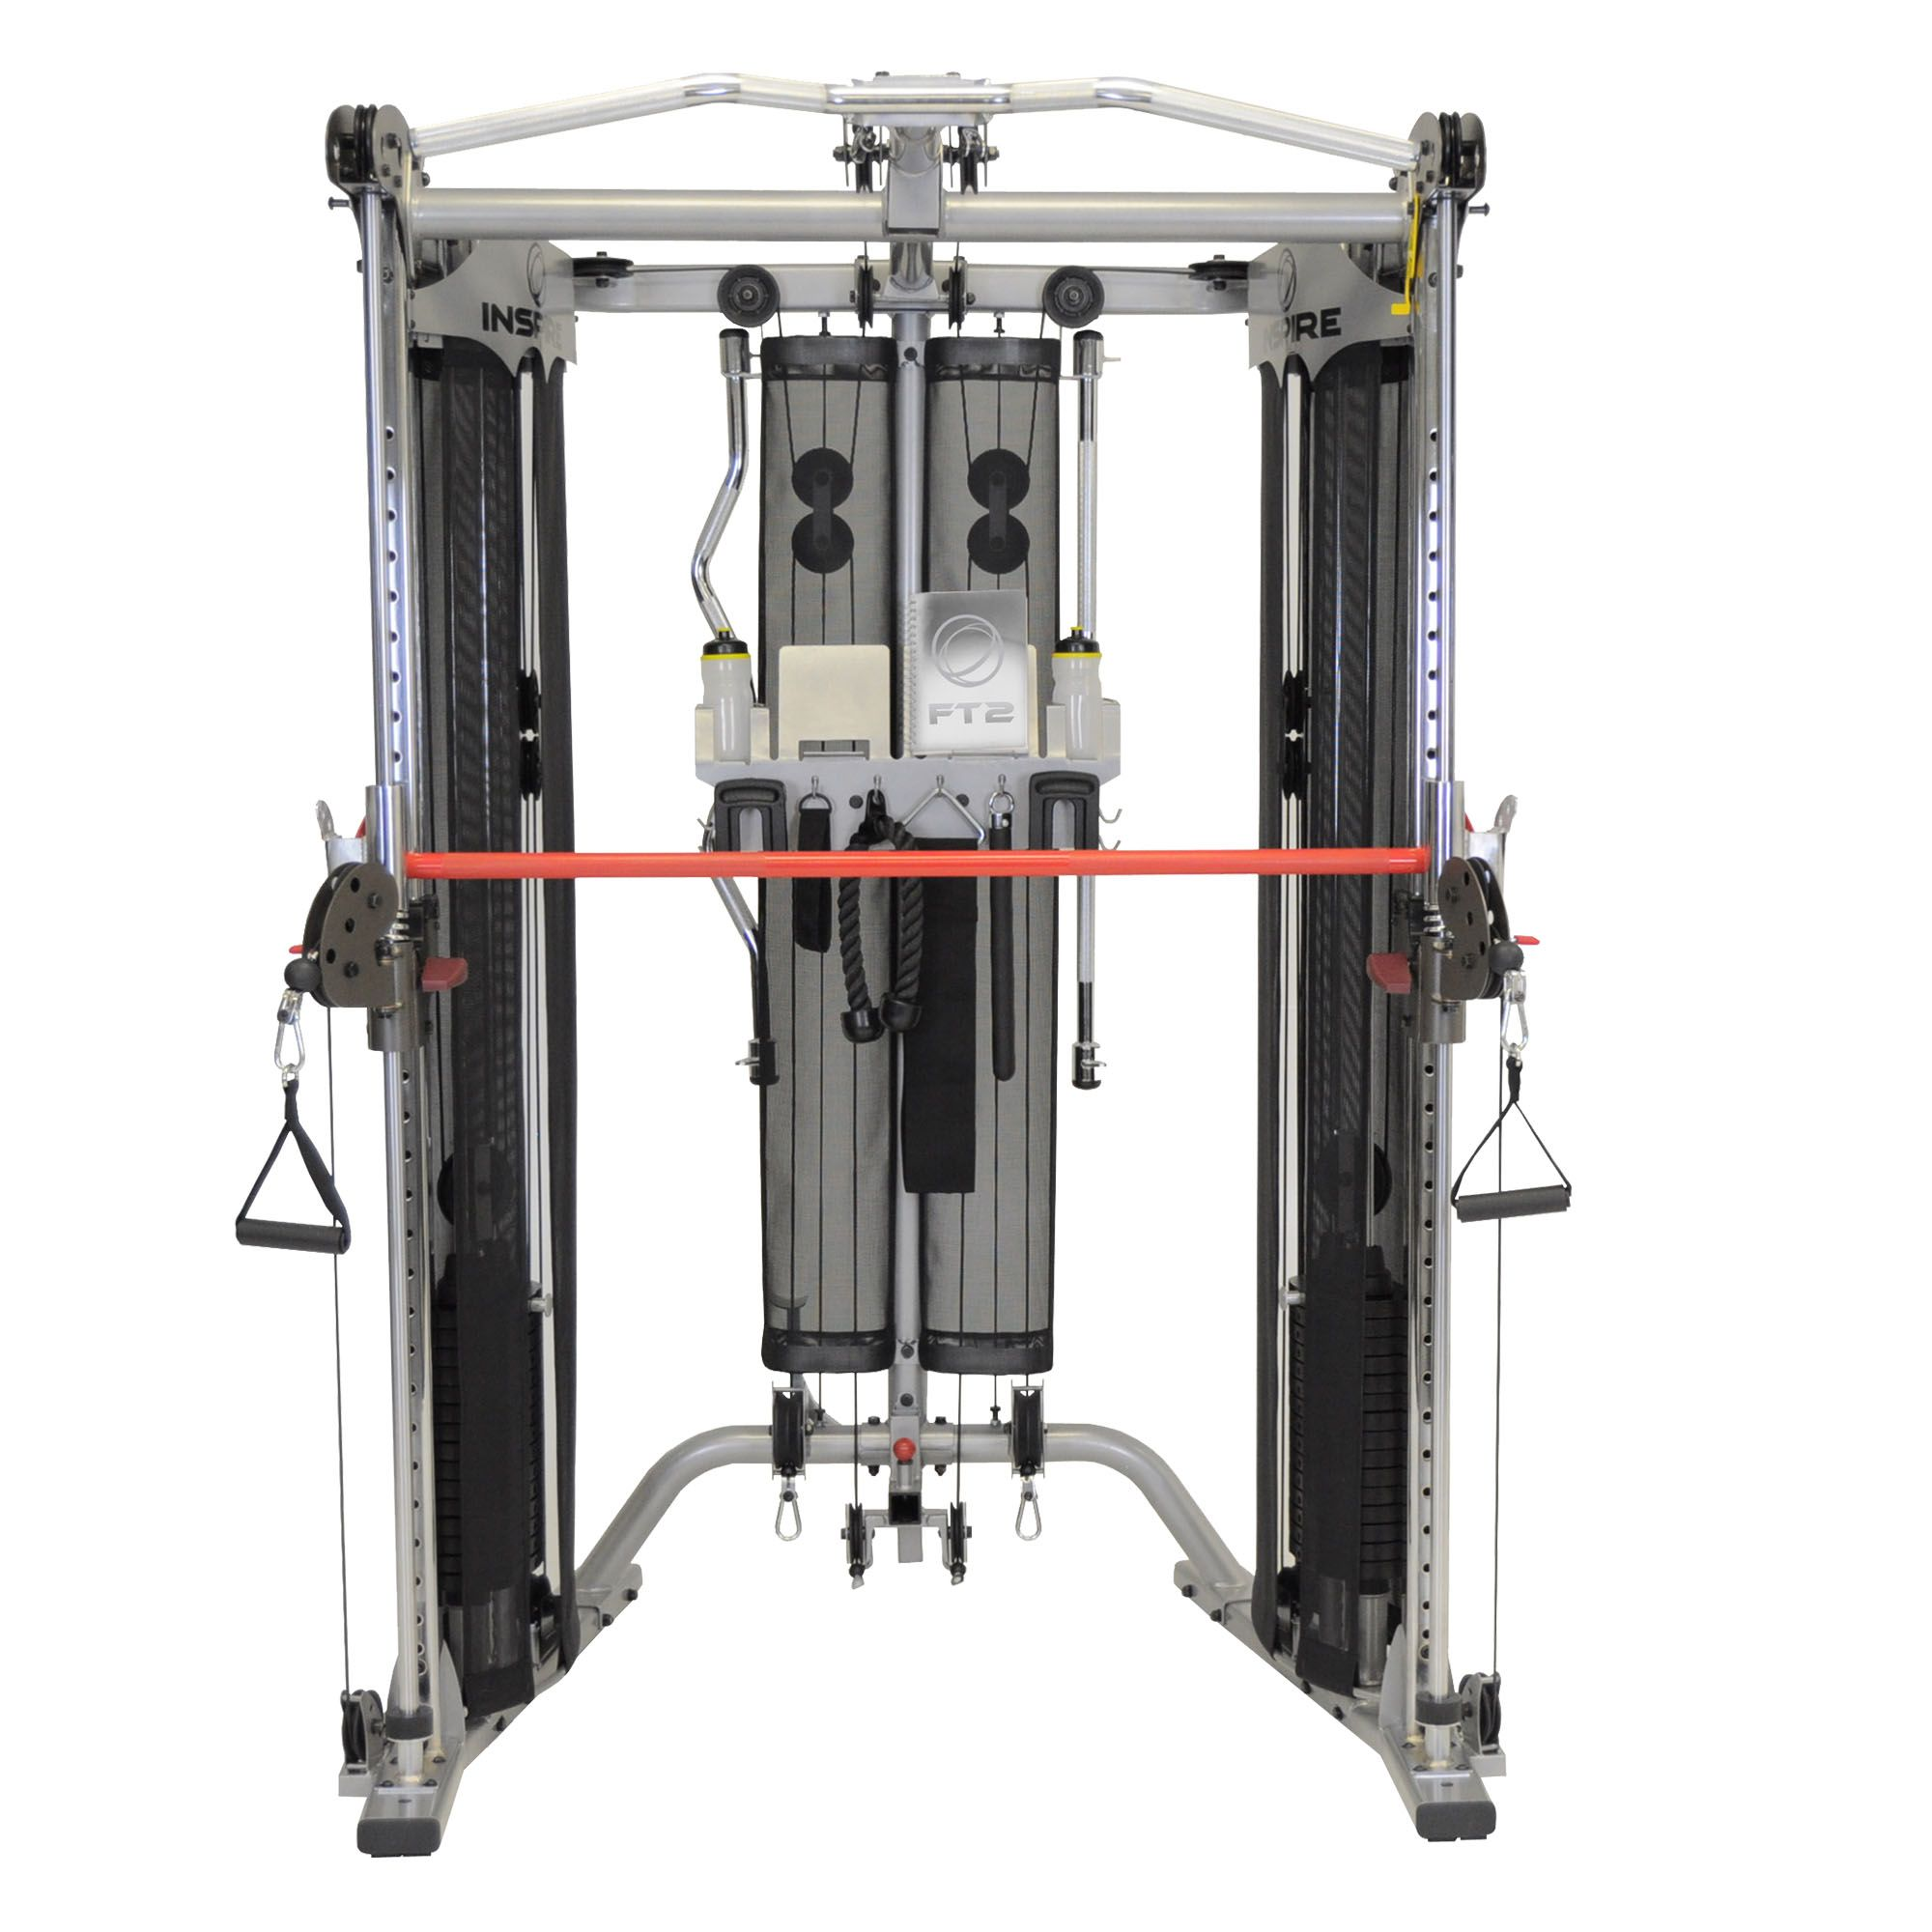 Inspire Fitness FT2 Functional Trainer